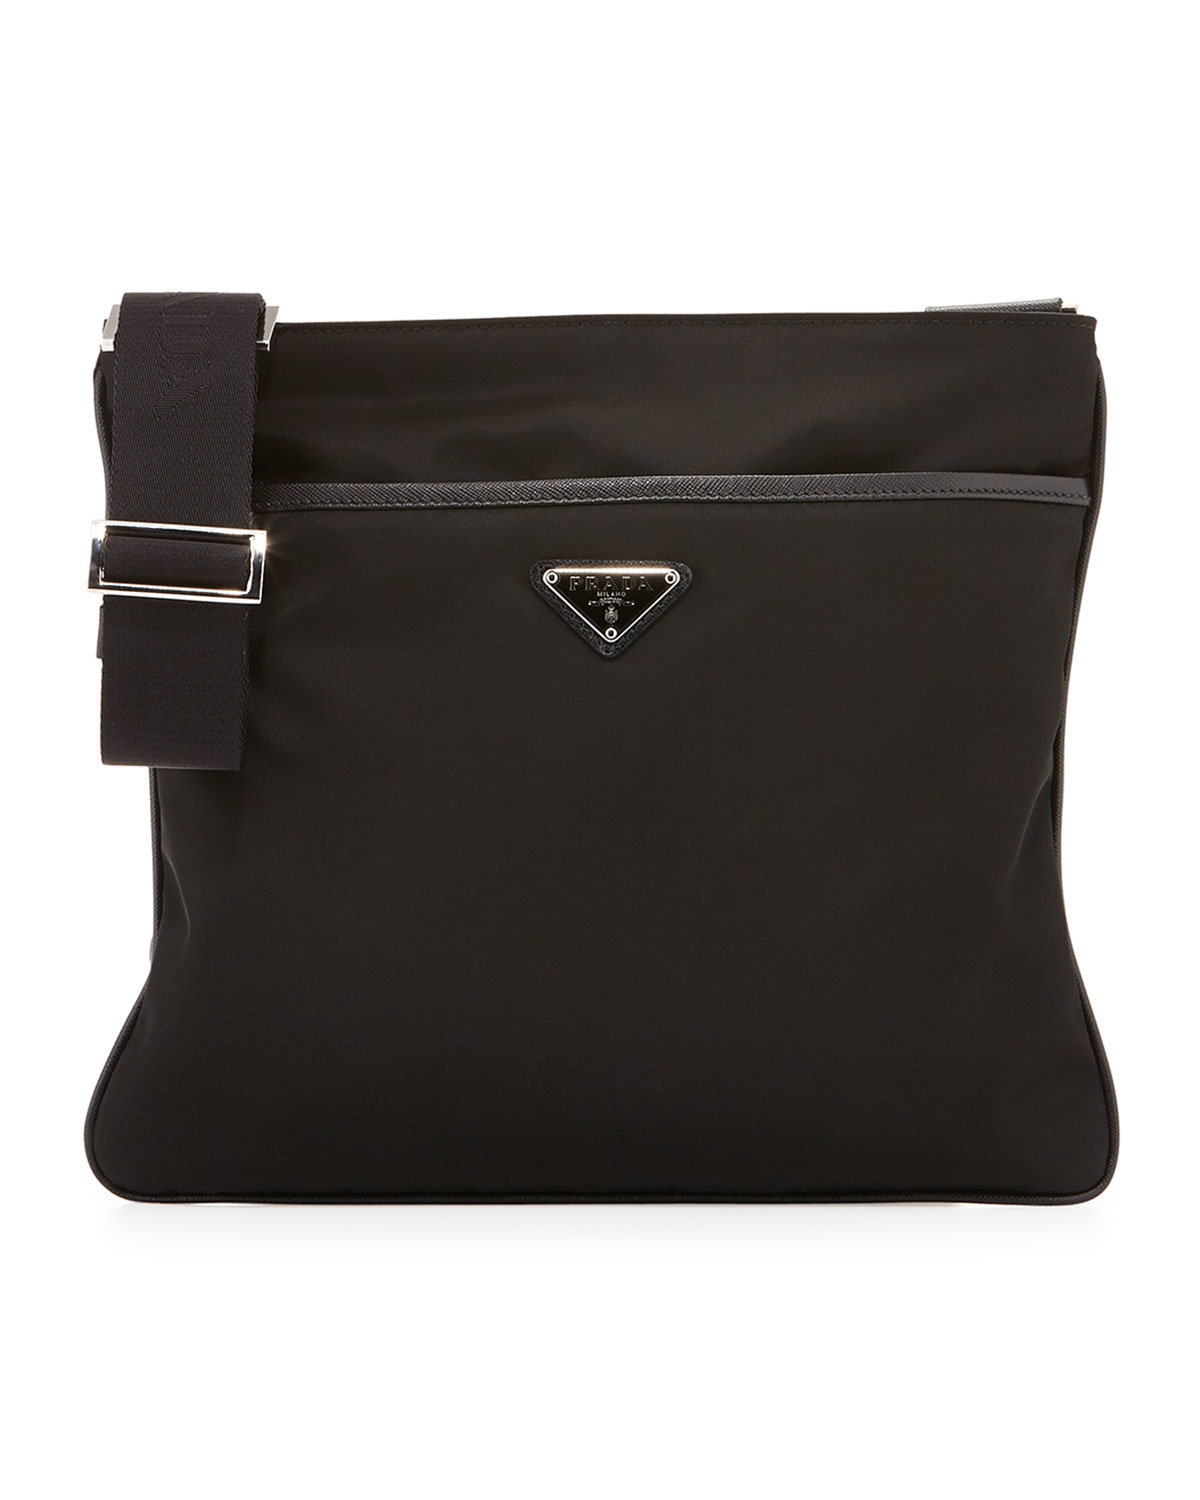 prada bags com - Prada Nylon Crossbody Bag in Black for Men | Lyst